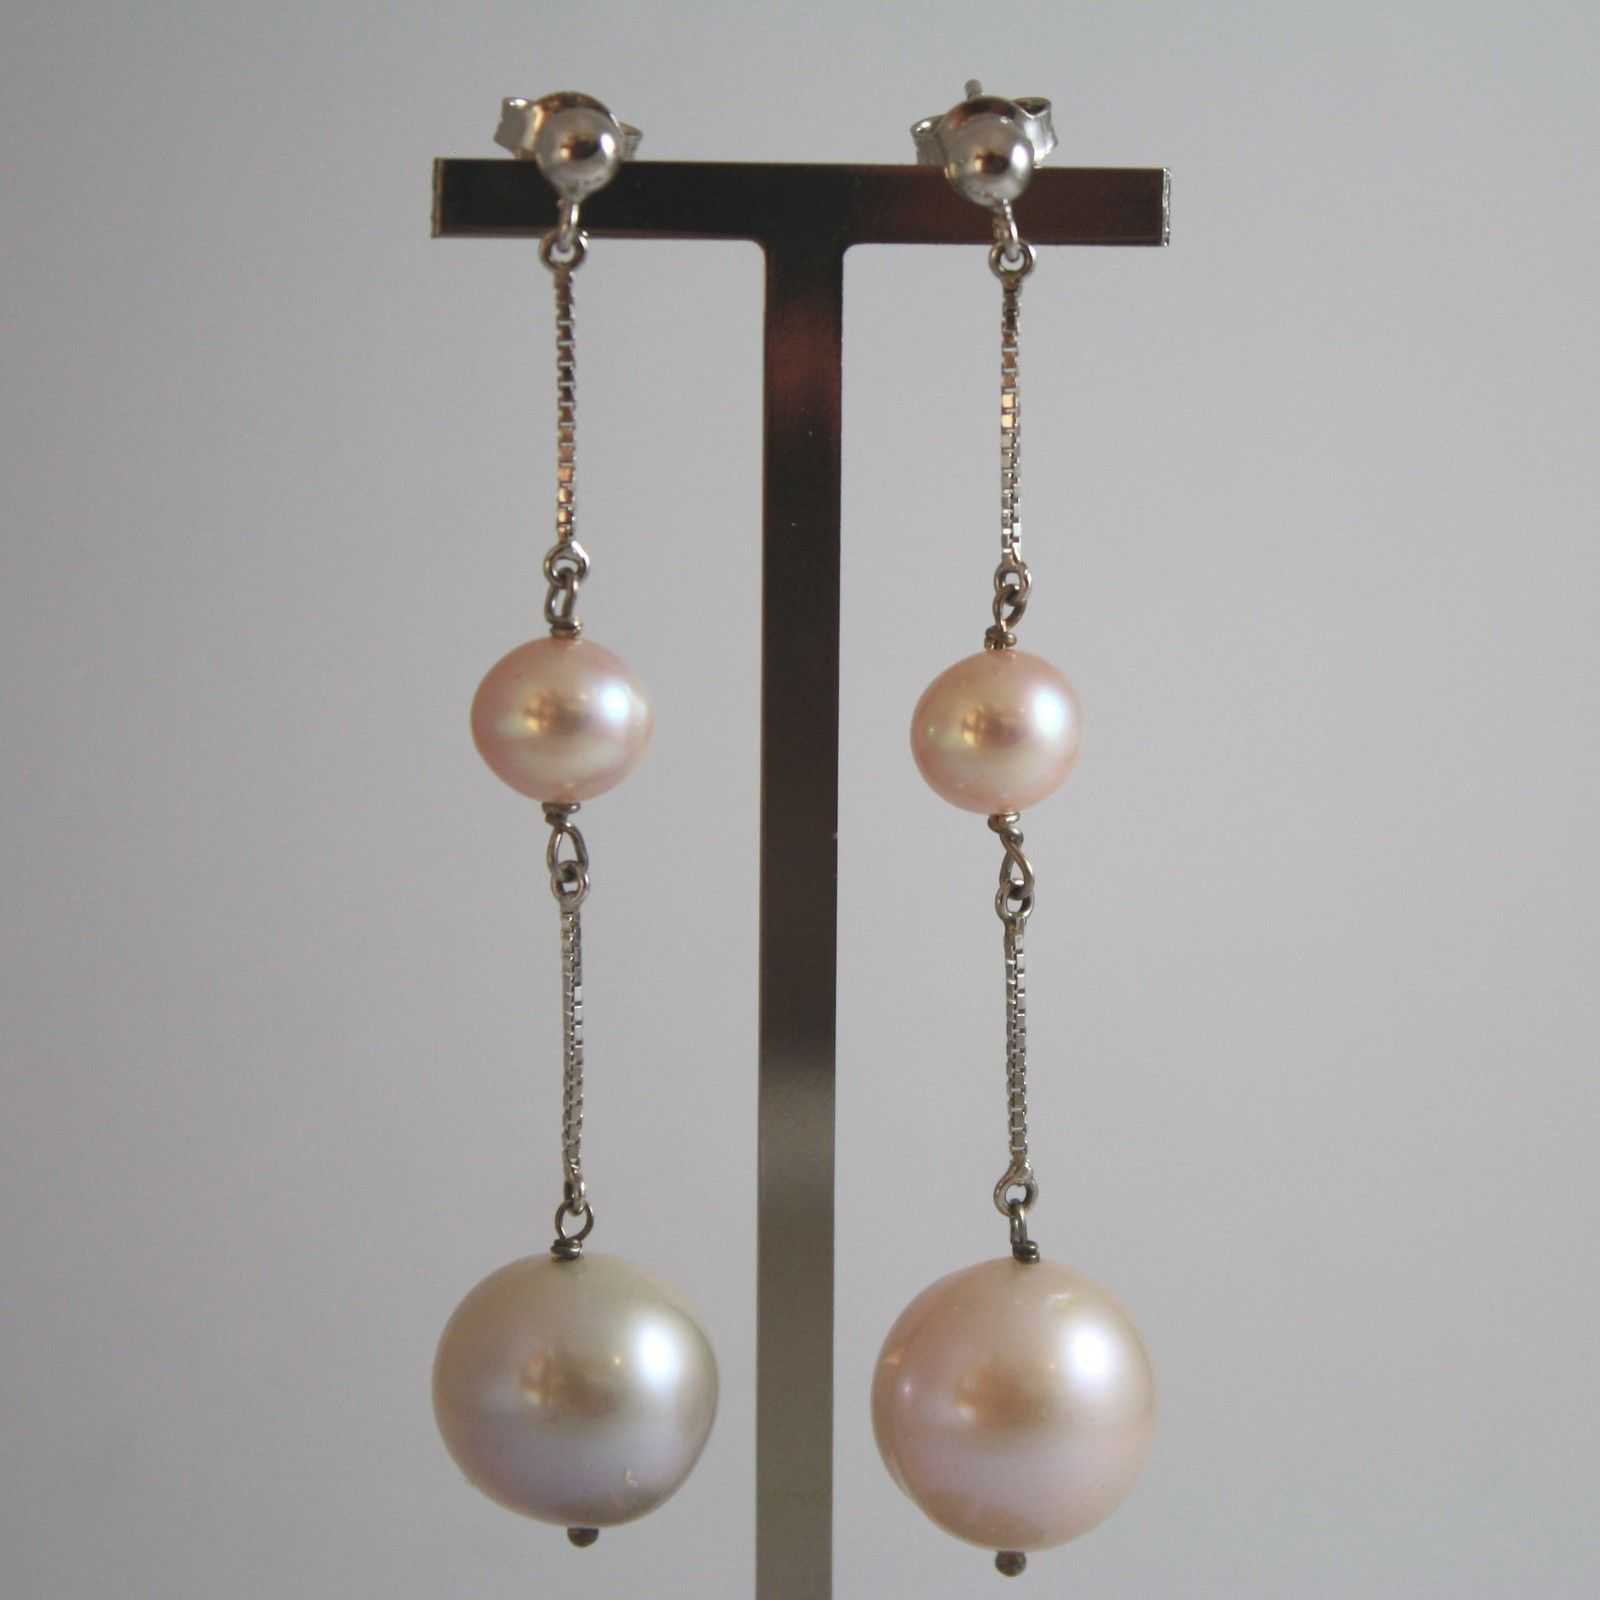 White Gold Earrings 750 18k charms, with white pearls and pink